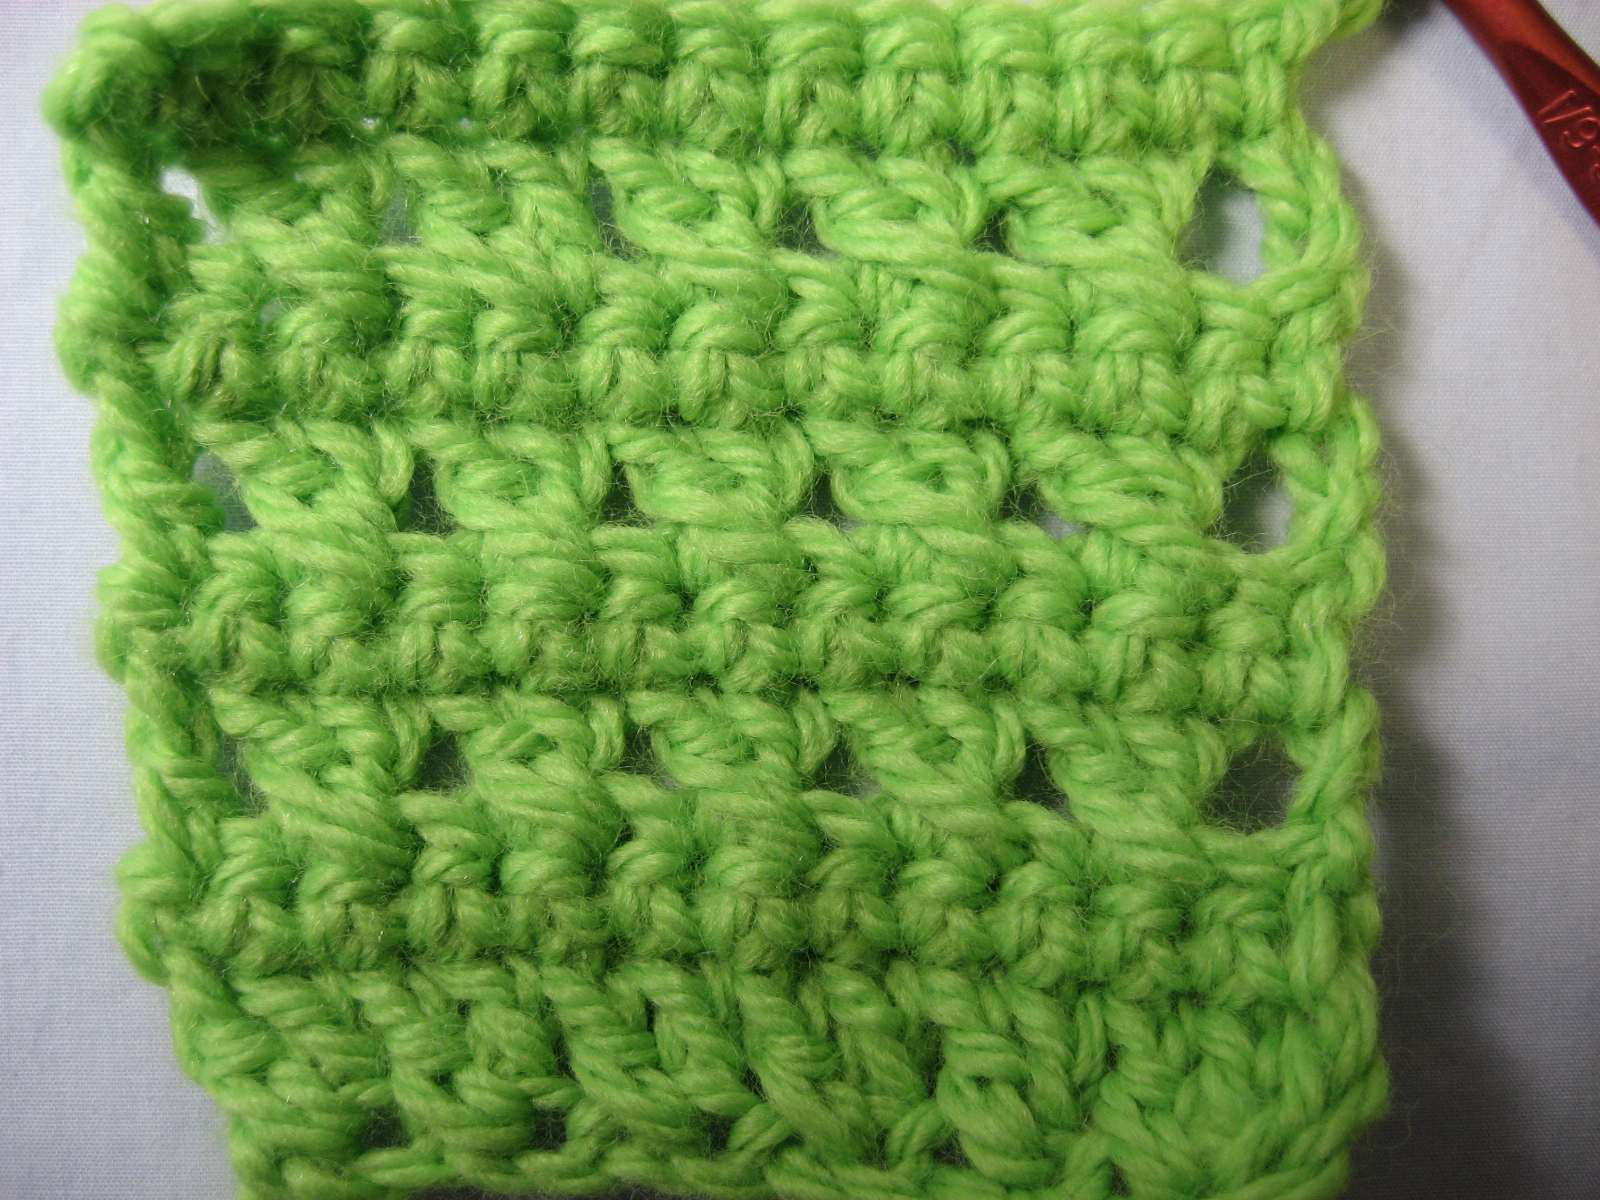 Crocheting Double Crochet : ... double crochet so that the right side of the crossed double crochet